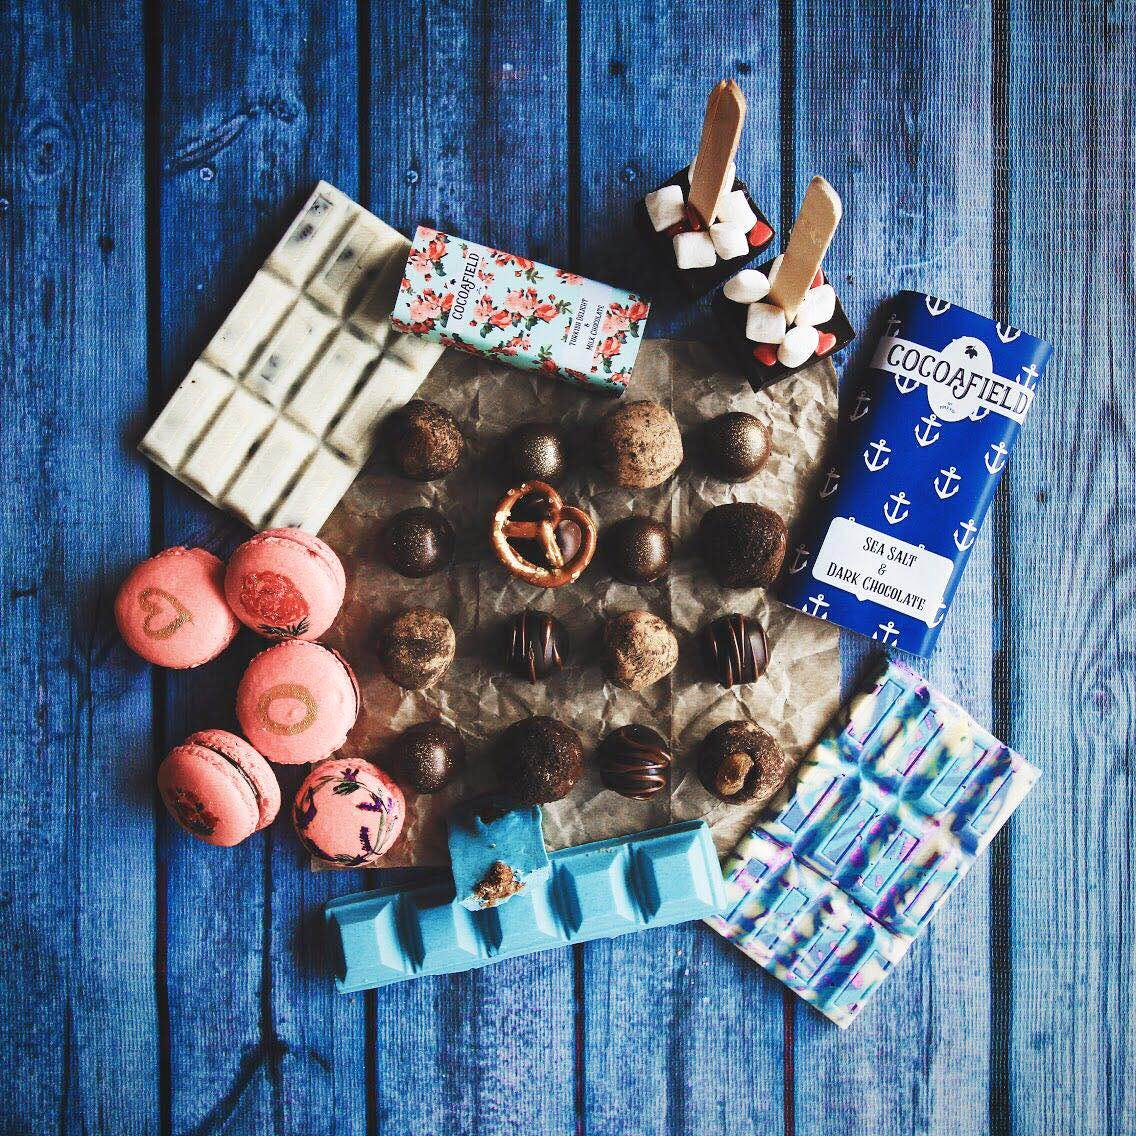 Valentines Hamper, DIY Chocolate bars and all things chocolate by the House of Cocoafield !